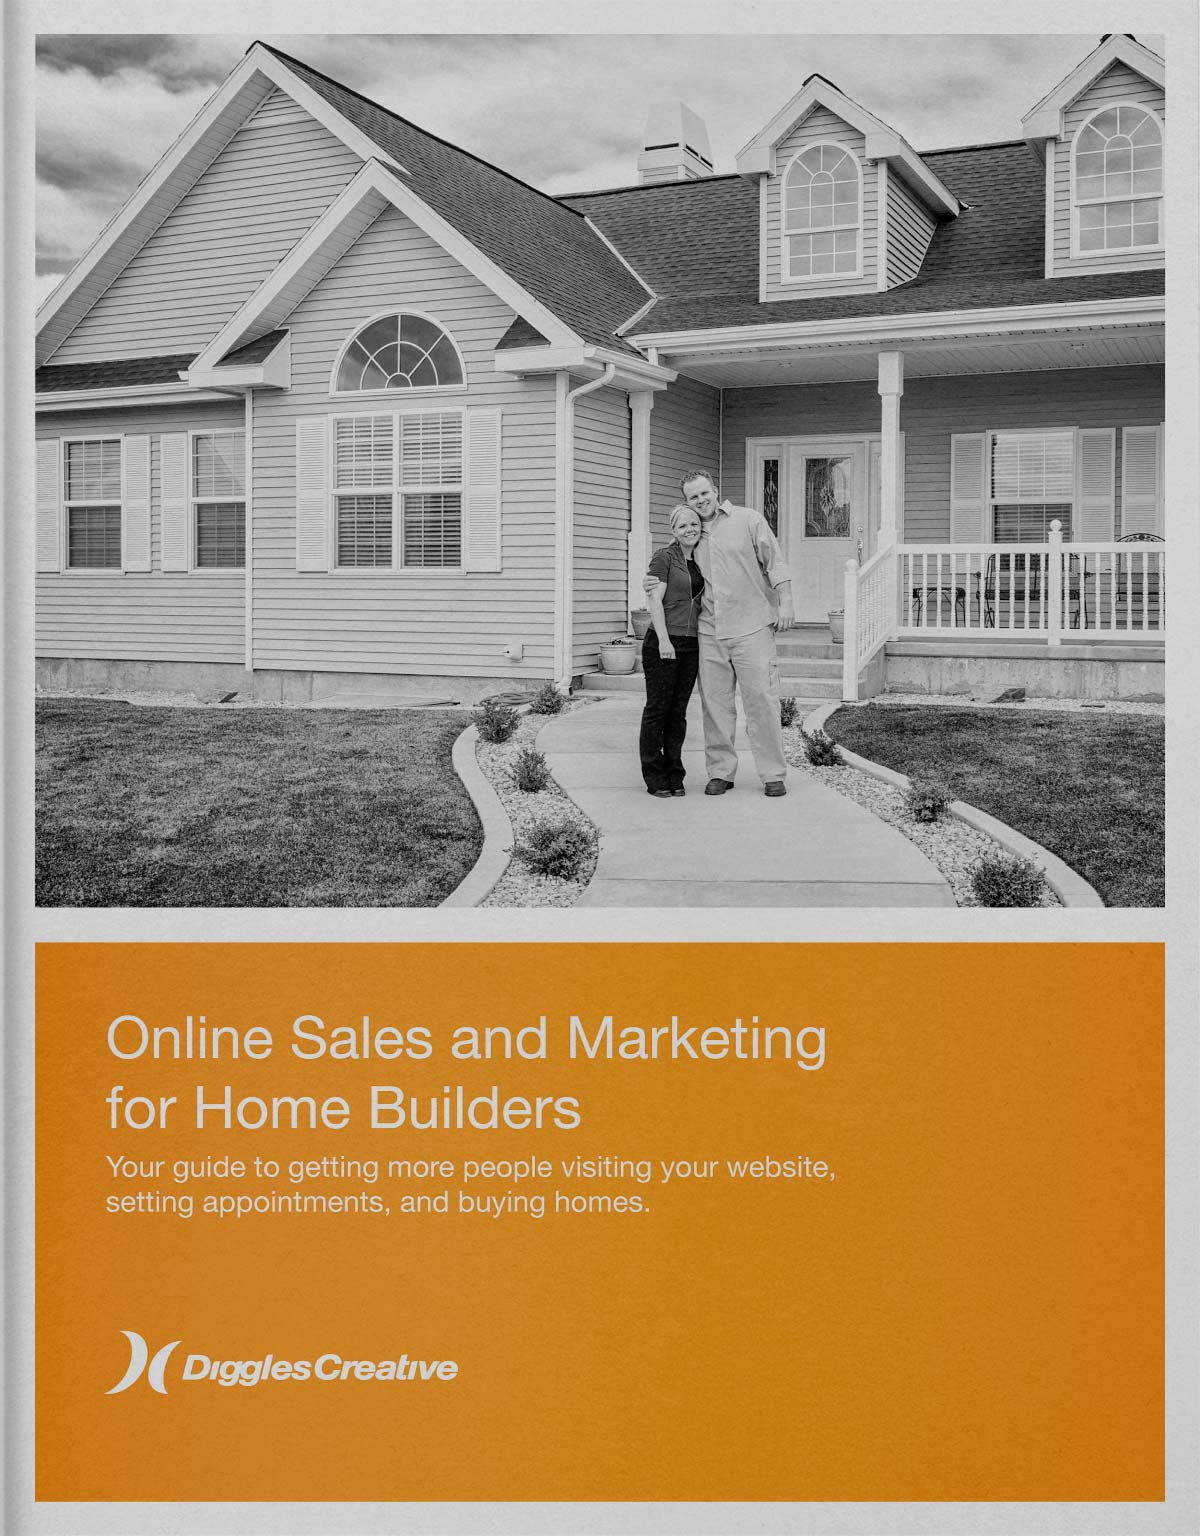 Ebook - Online Sales and Marketing for Home Builders